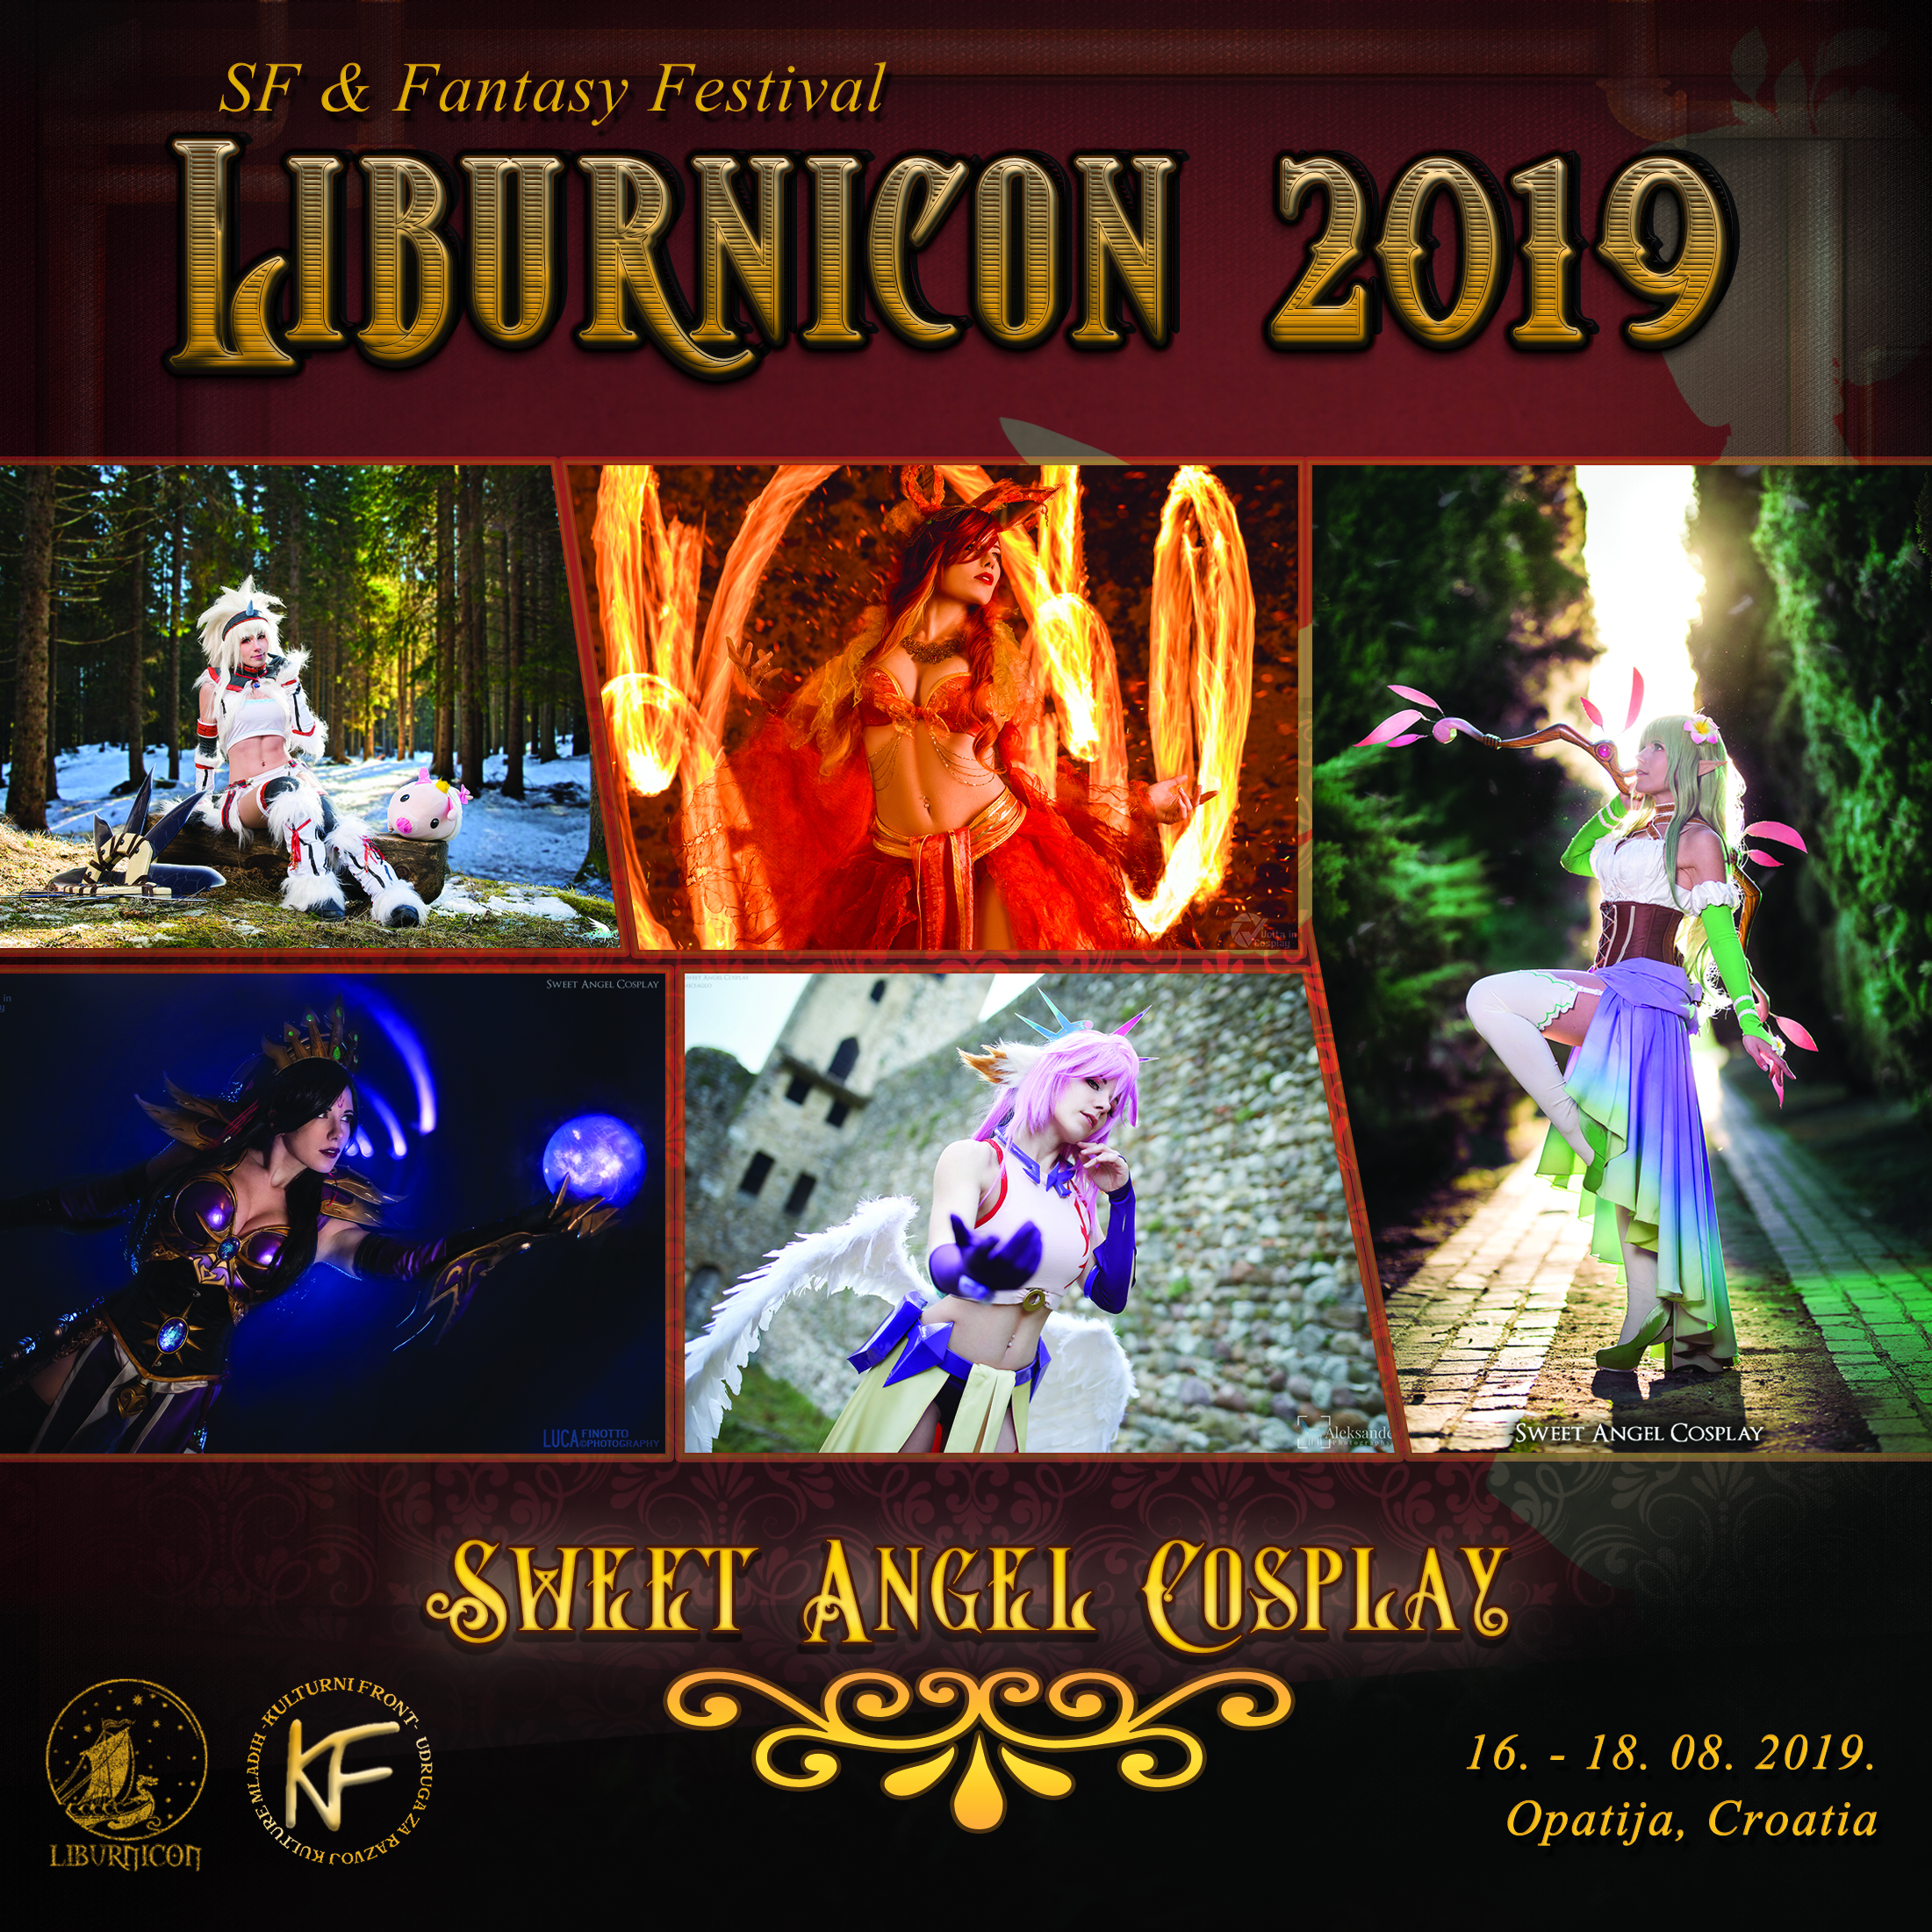 liburnicon sweetangel